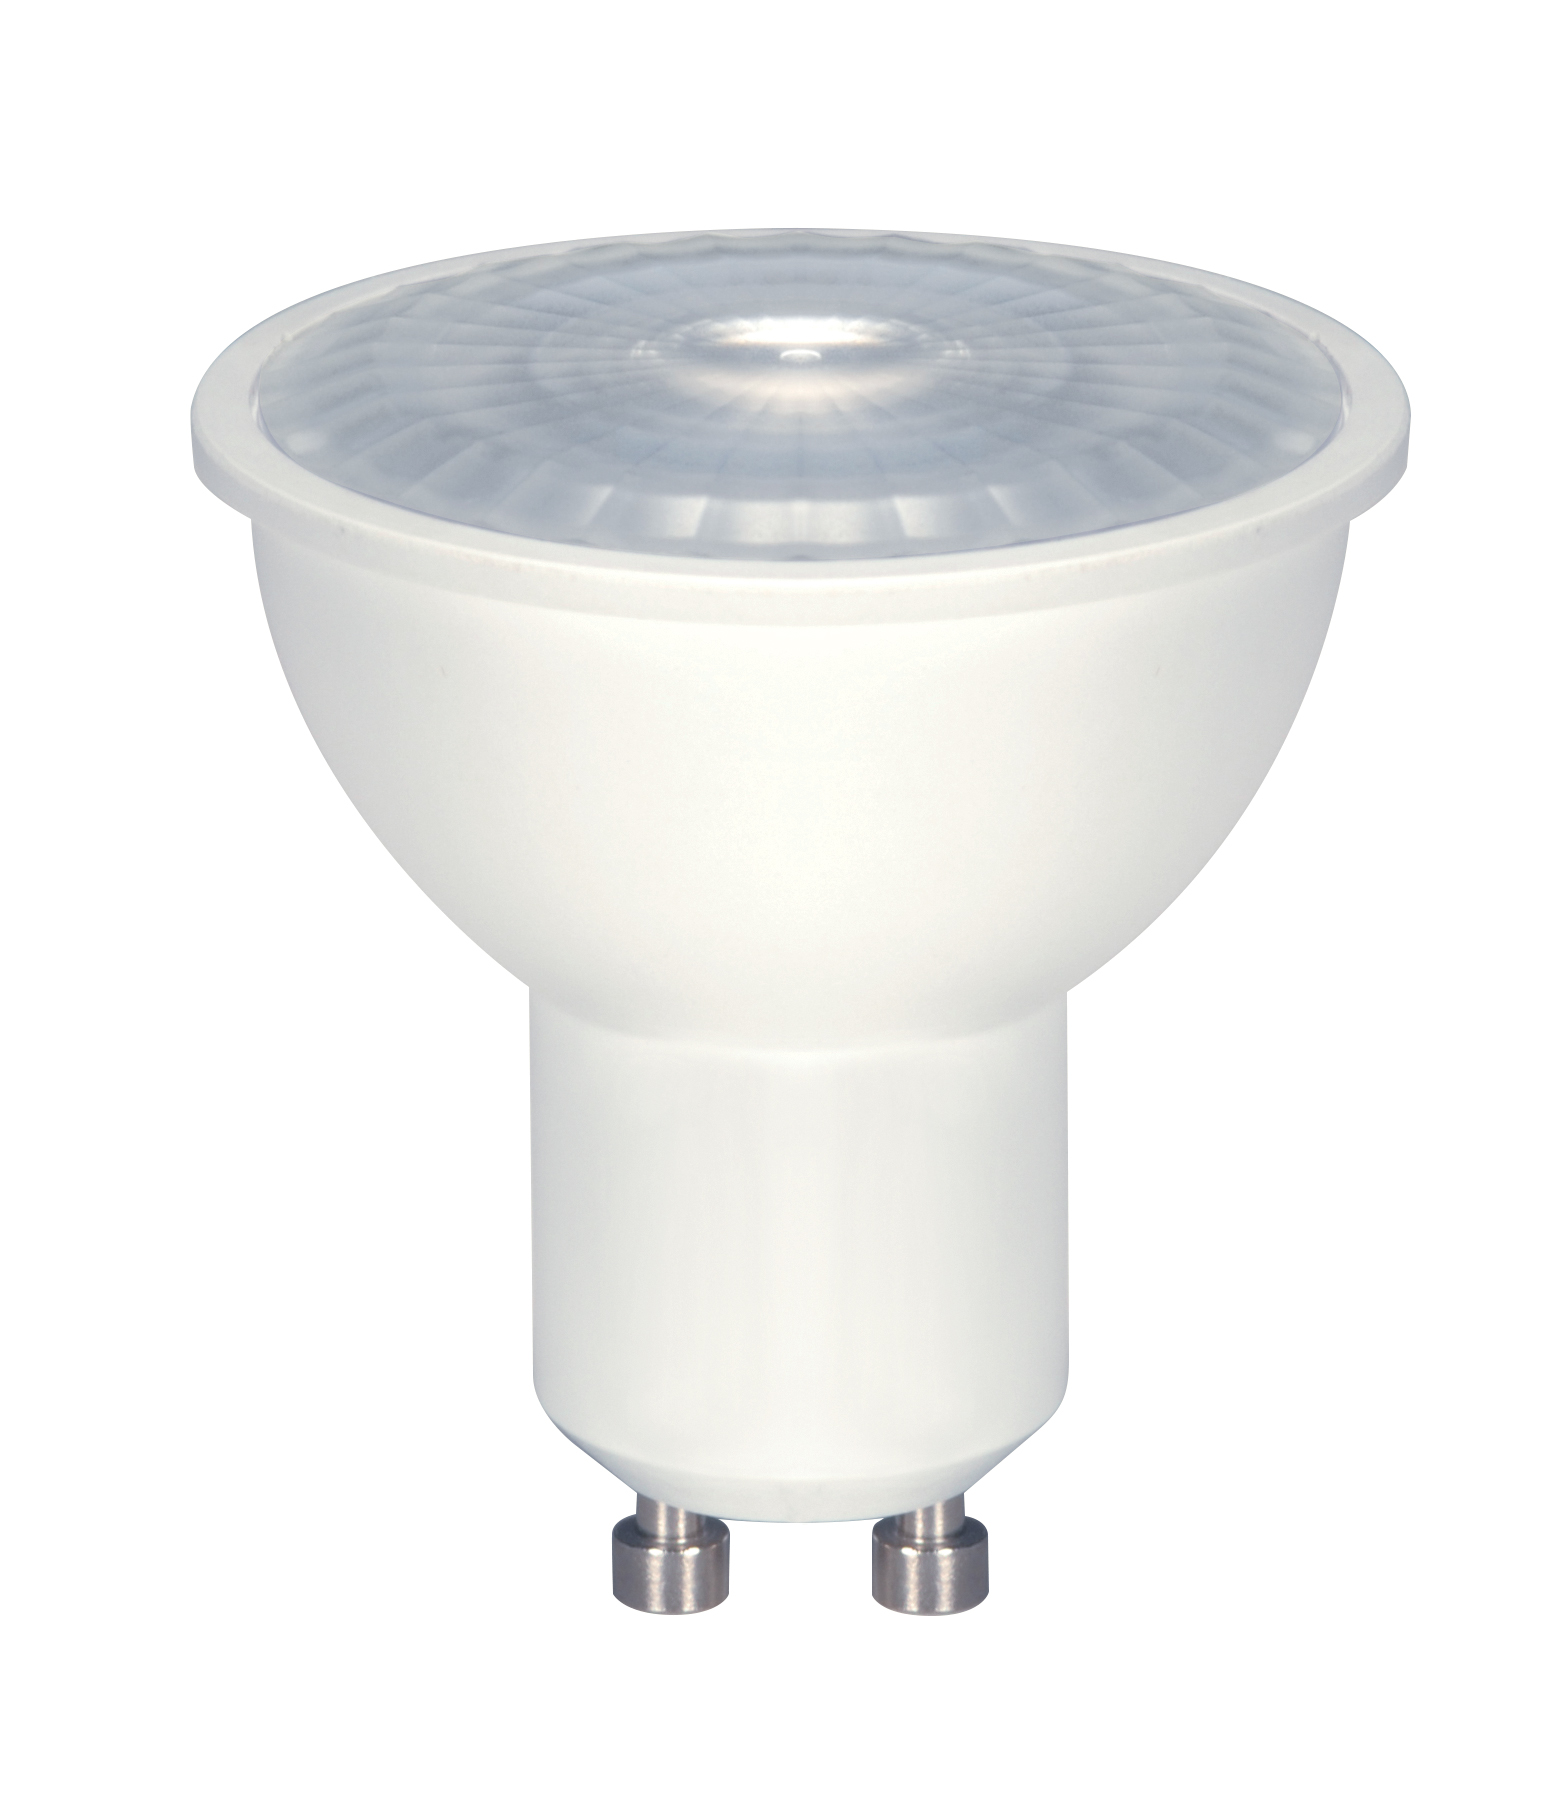 SATS9384 6.5W 120V LED LAMP, SATCO